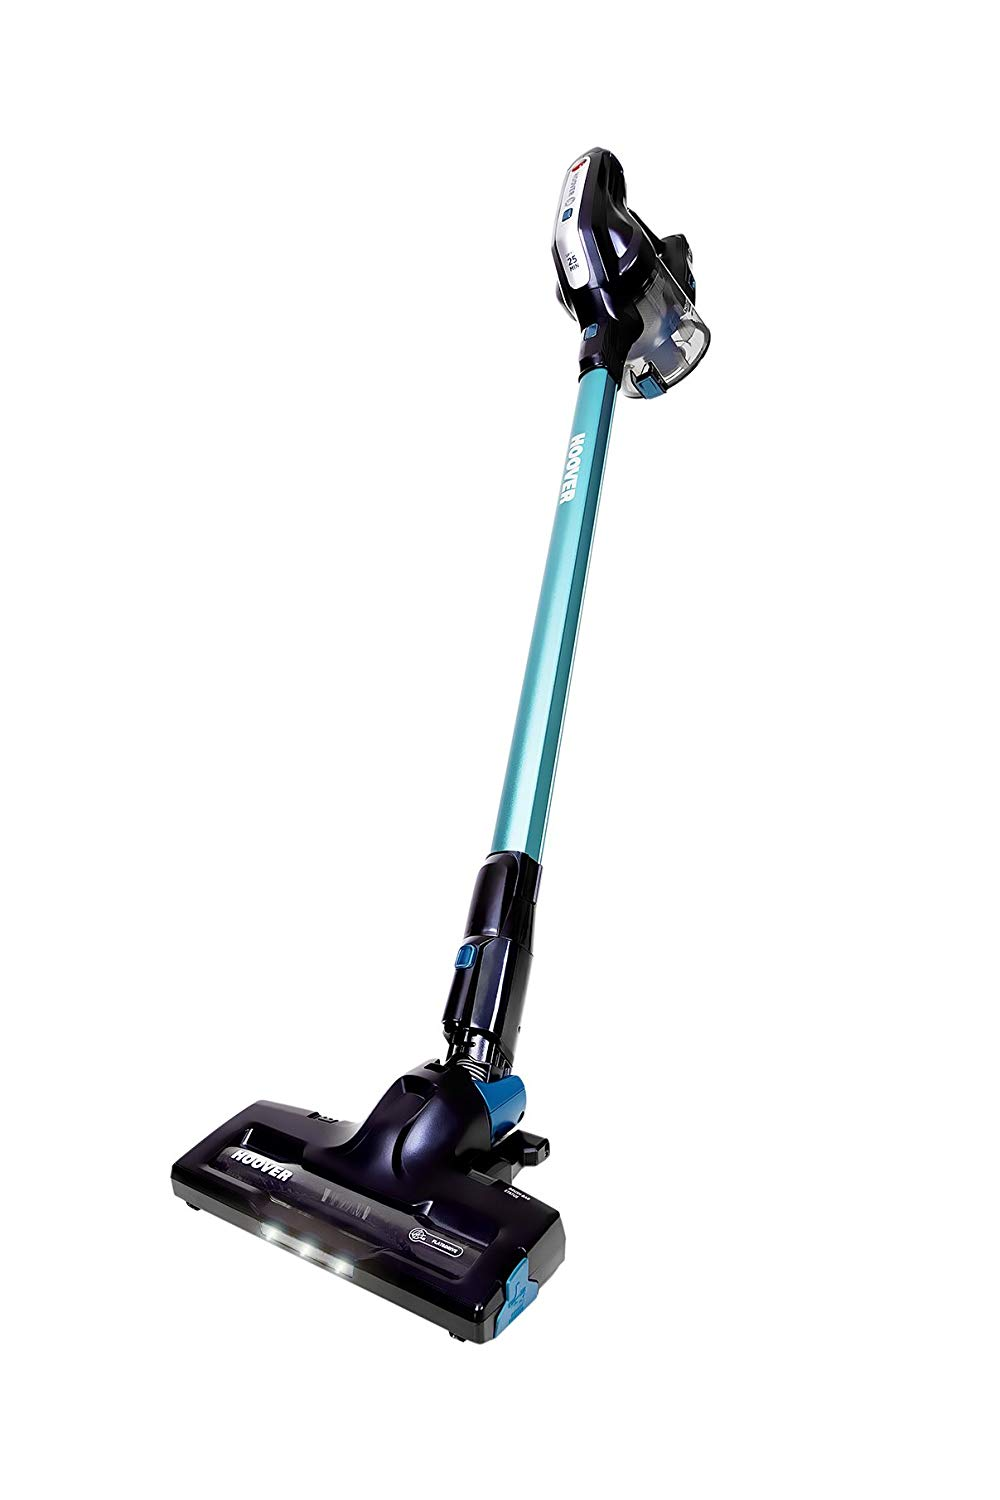 Hoover H-Free Pets 3in1 Cordless Stick Vacuum Cleaner